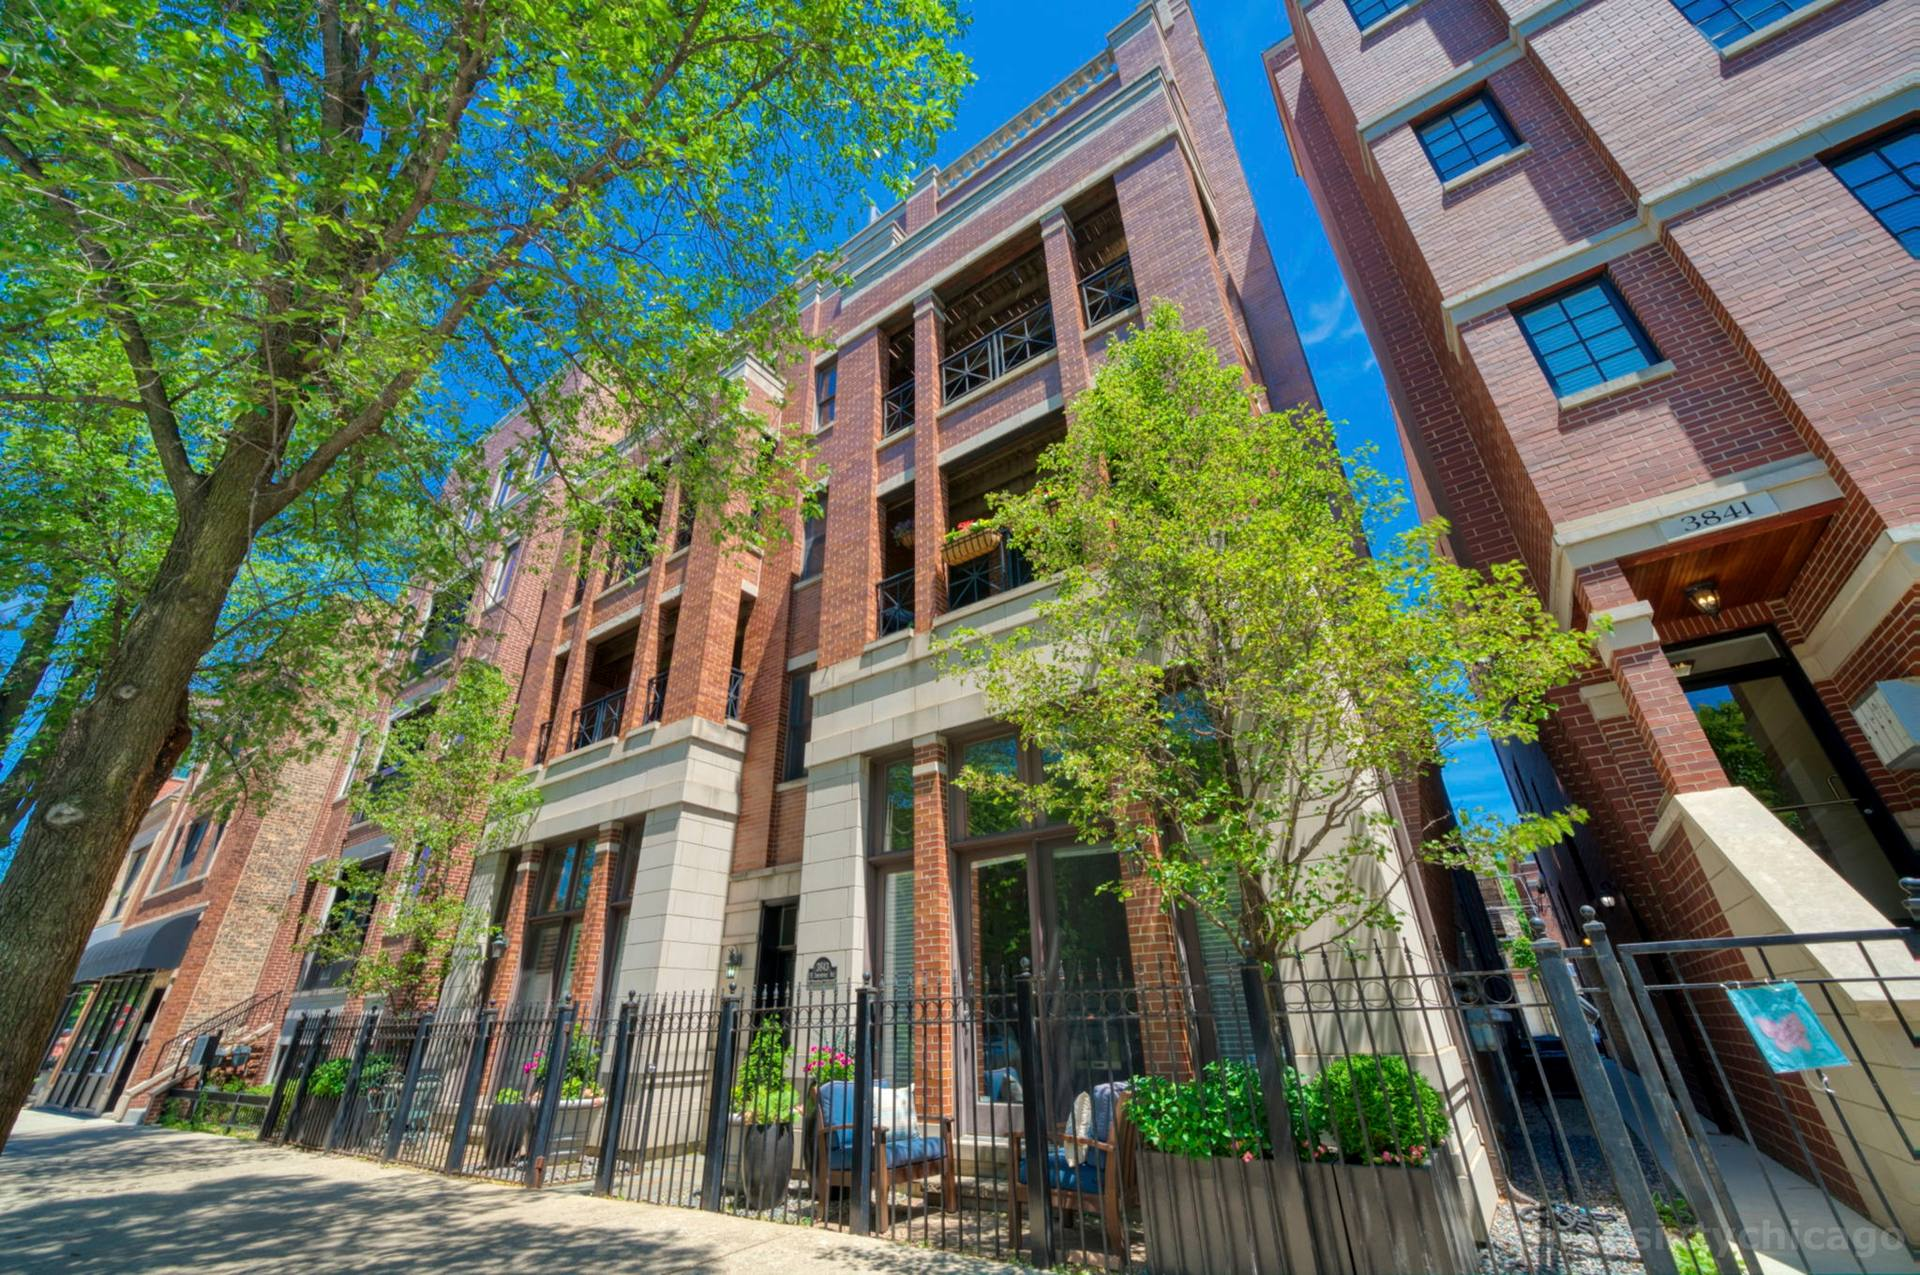 3843 N Southport Ave 1S, Chicago, IL 60613, US